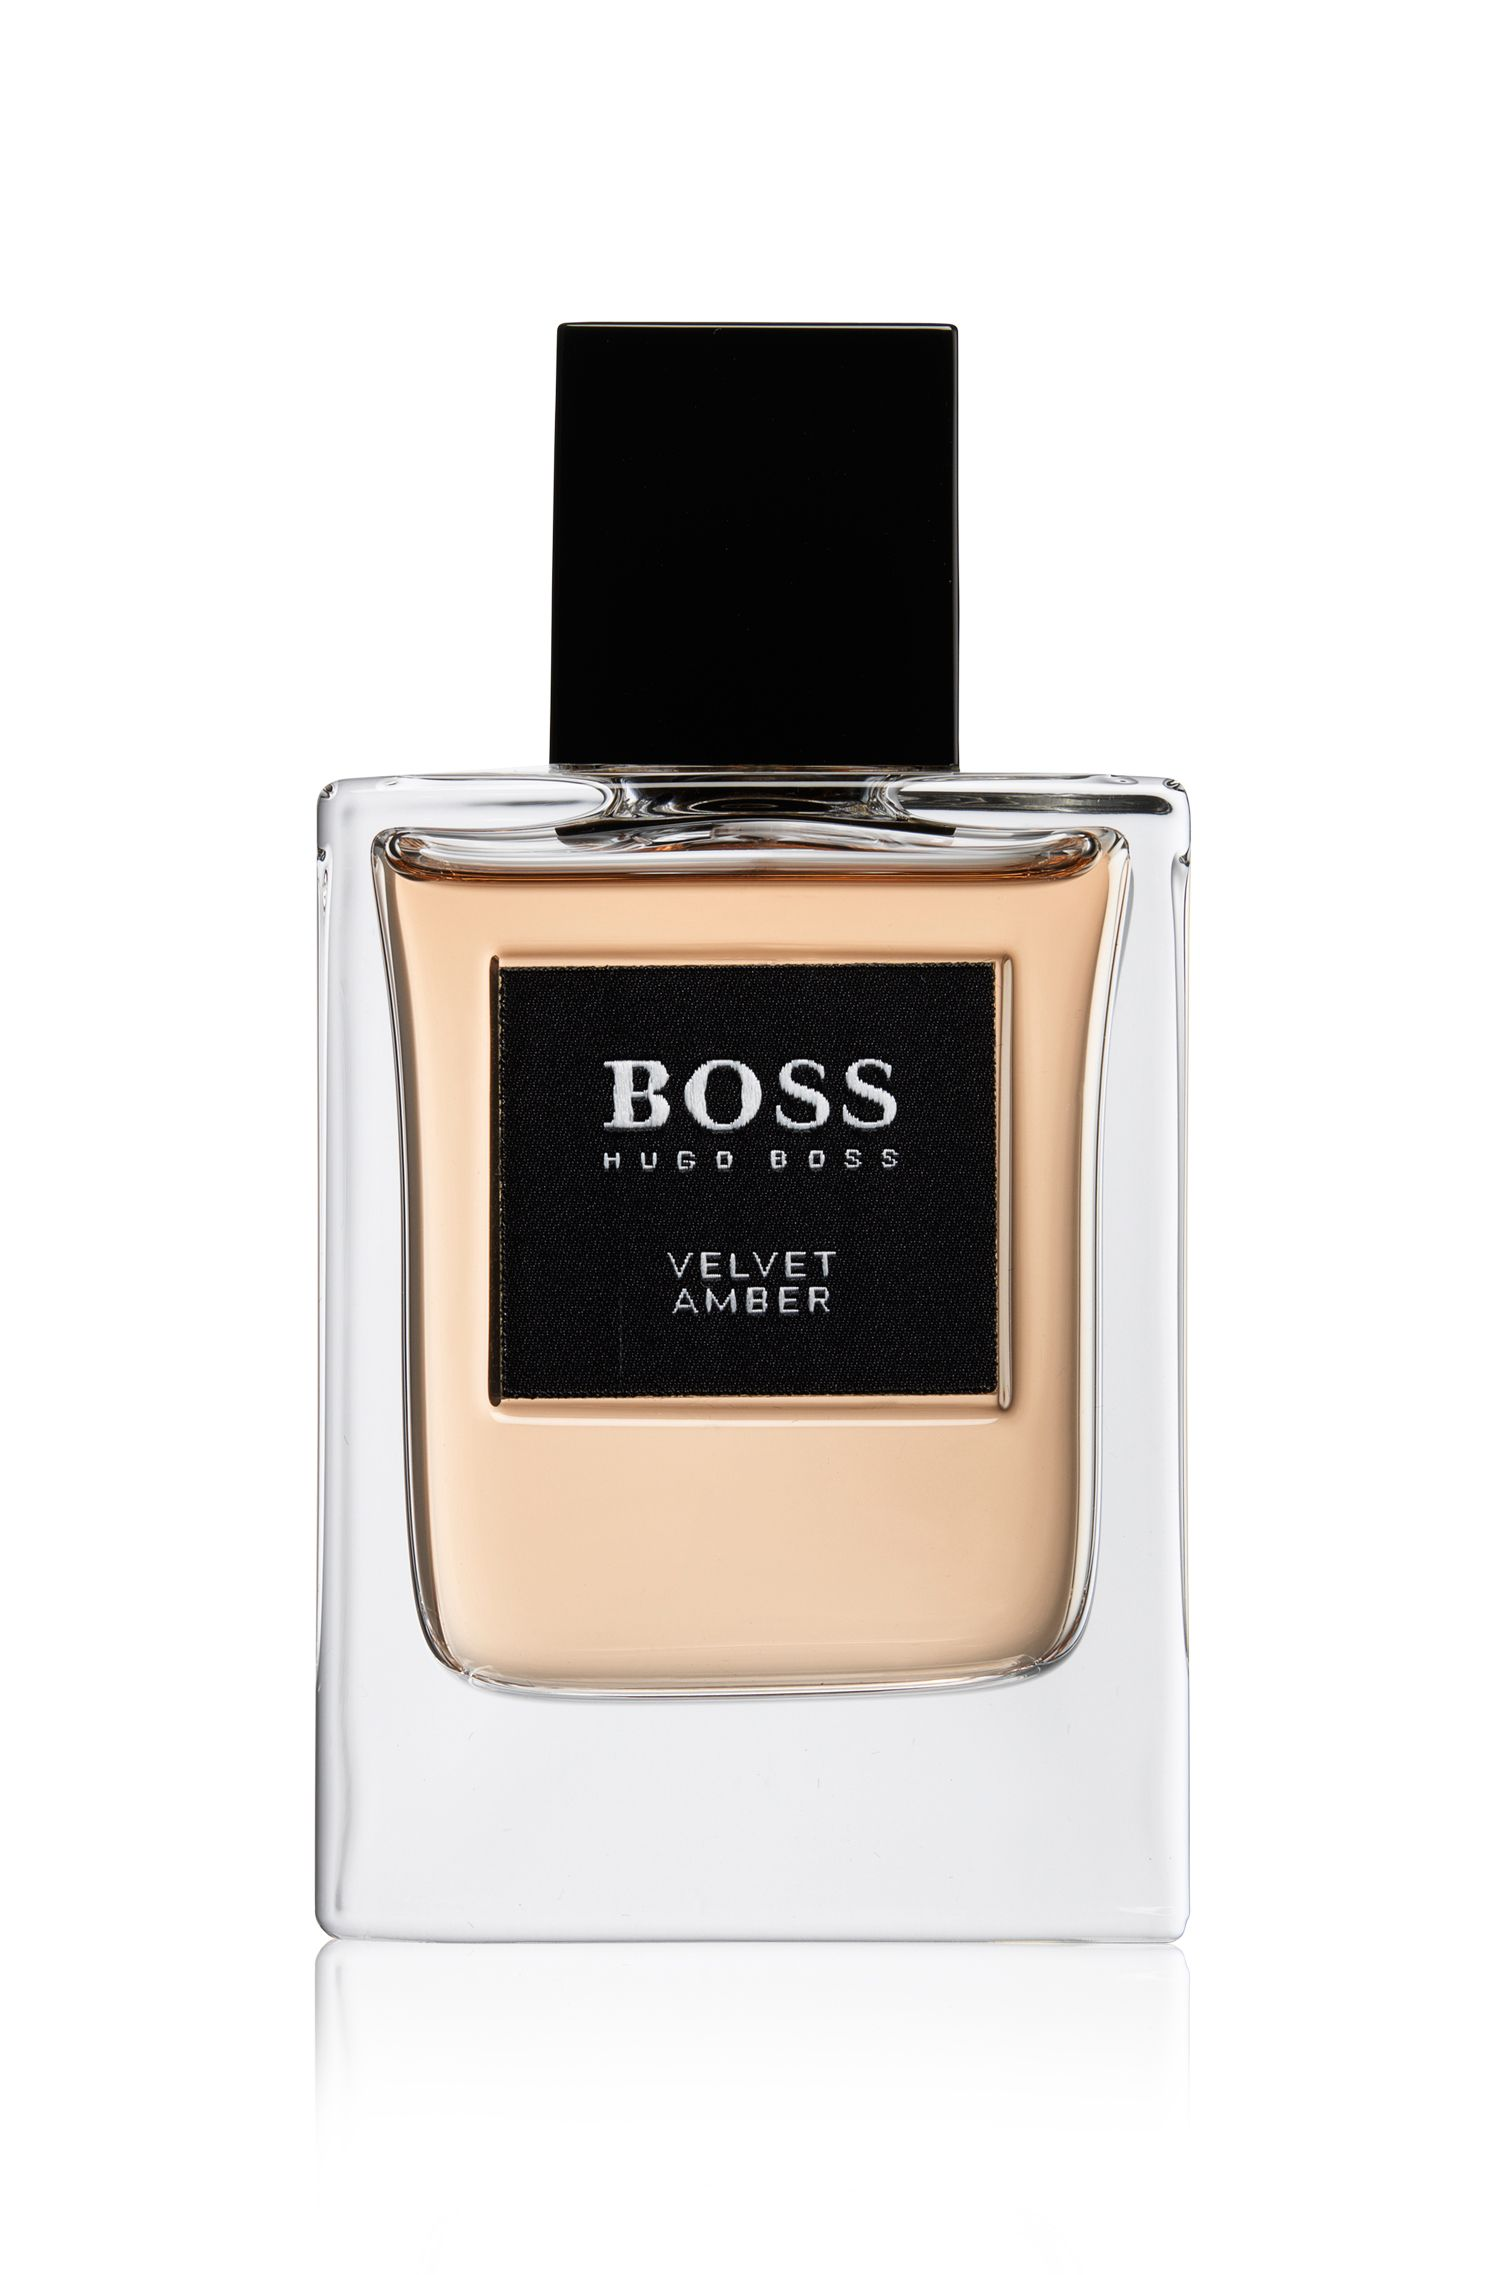 1.7 fl. oz. (50 mL) Velvet Amber Eau de Toilette | BOSS The Collection